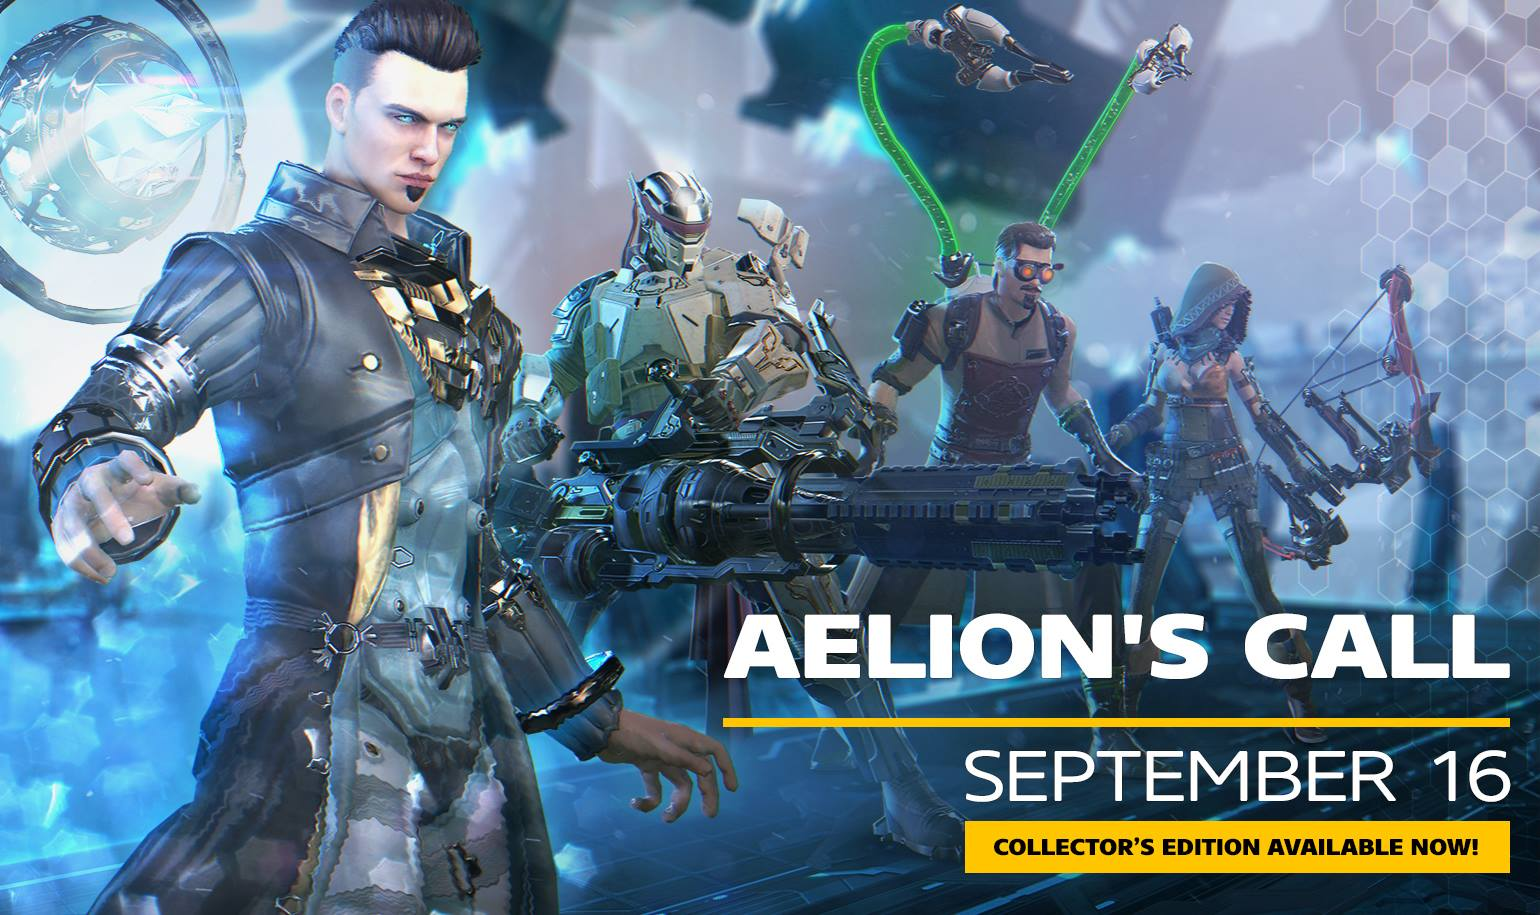 Skyforge - Aelion's Call update image